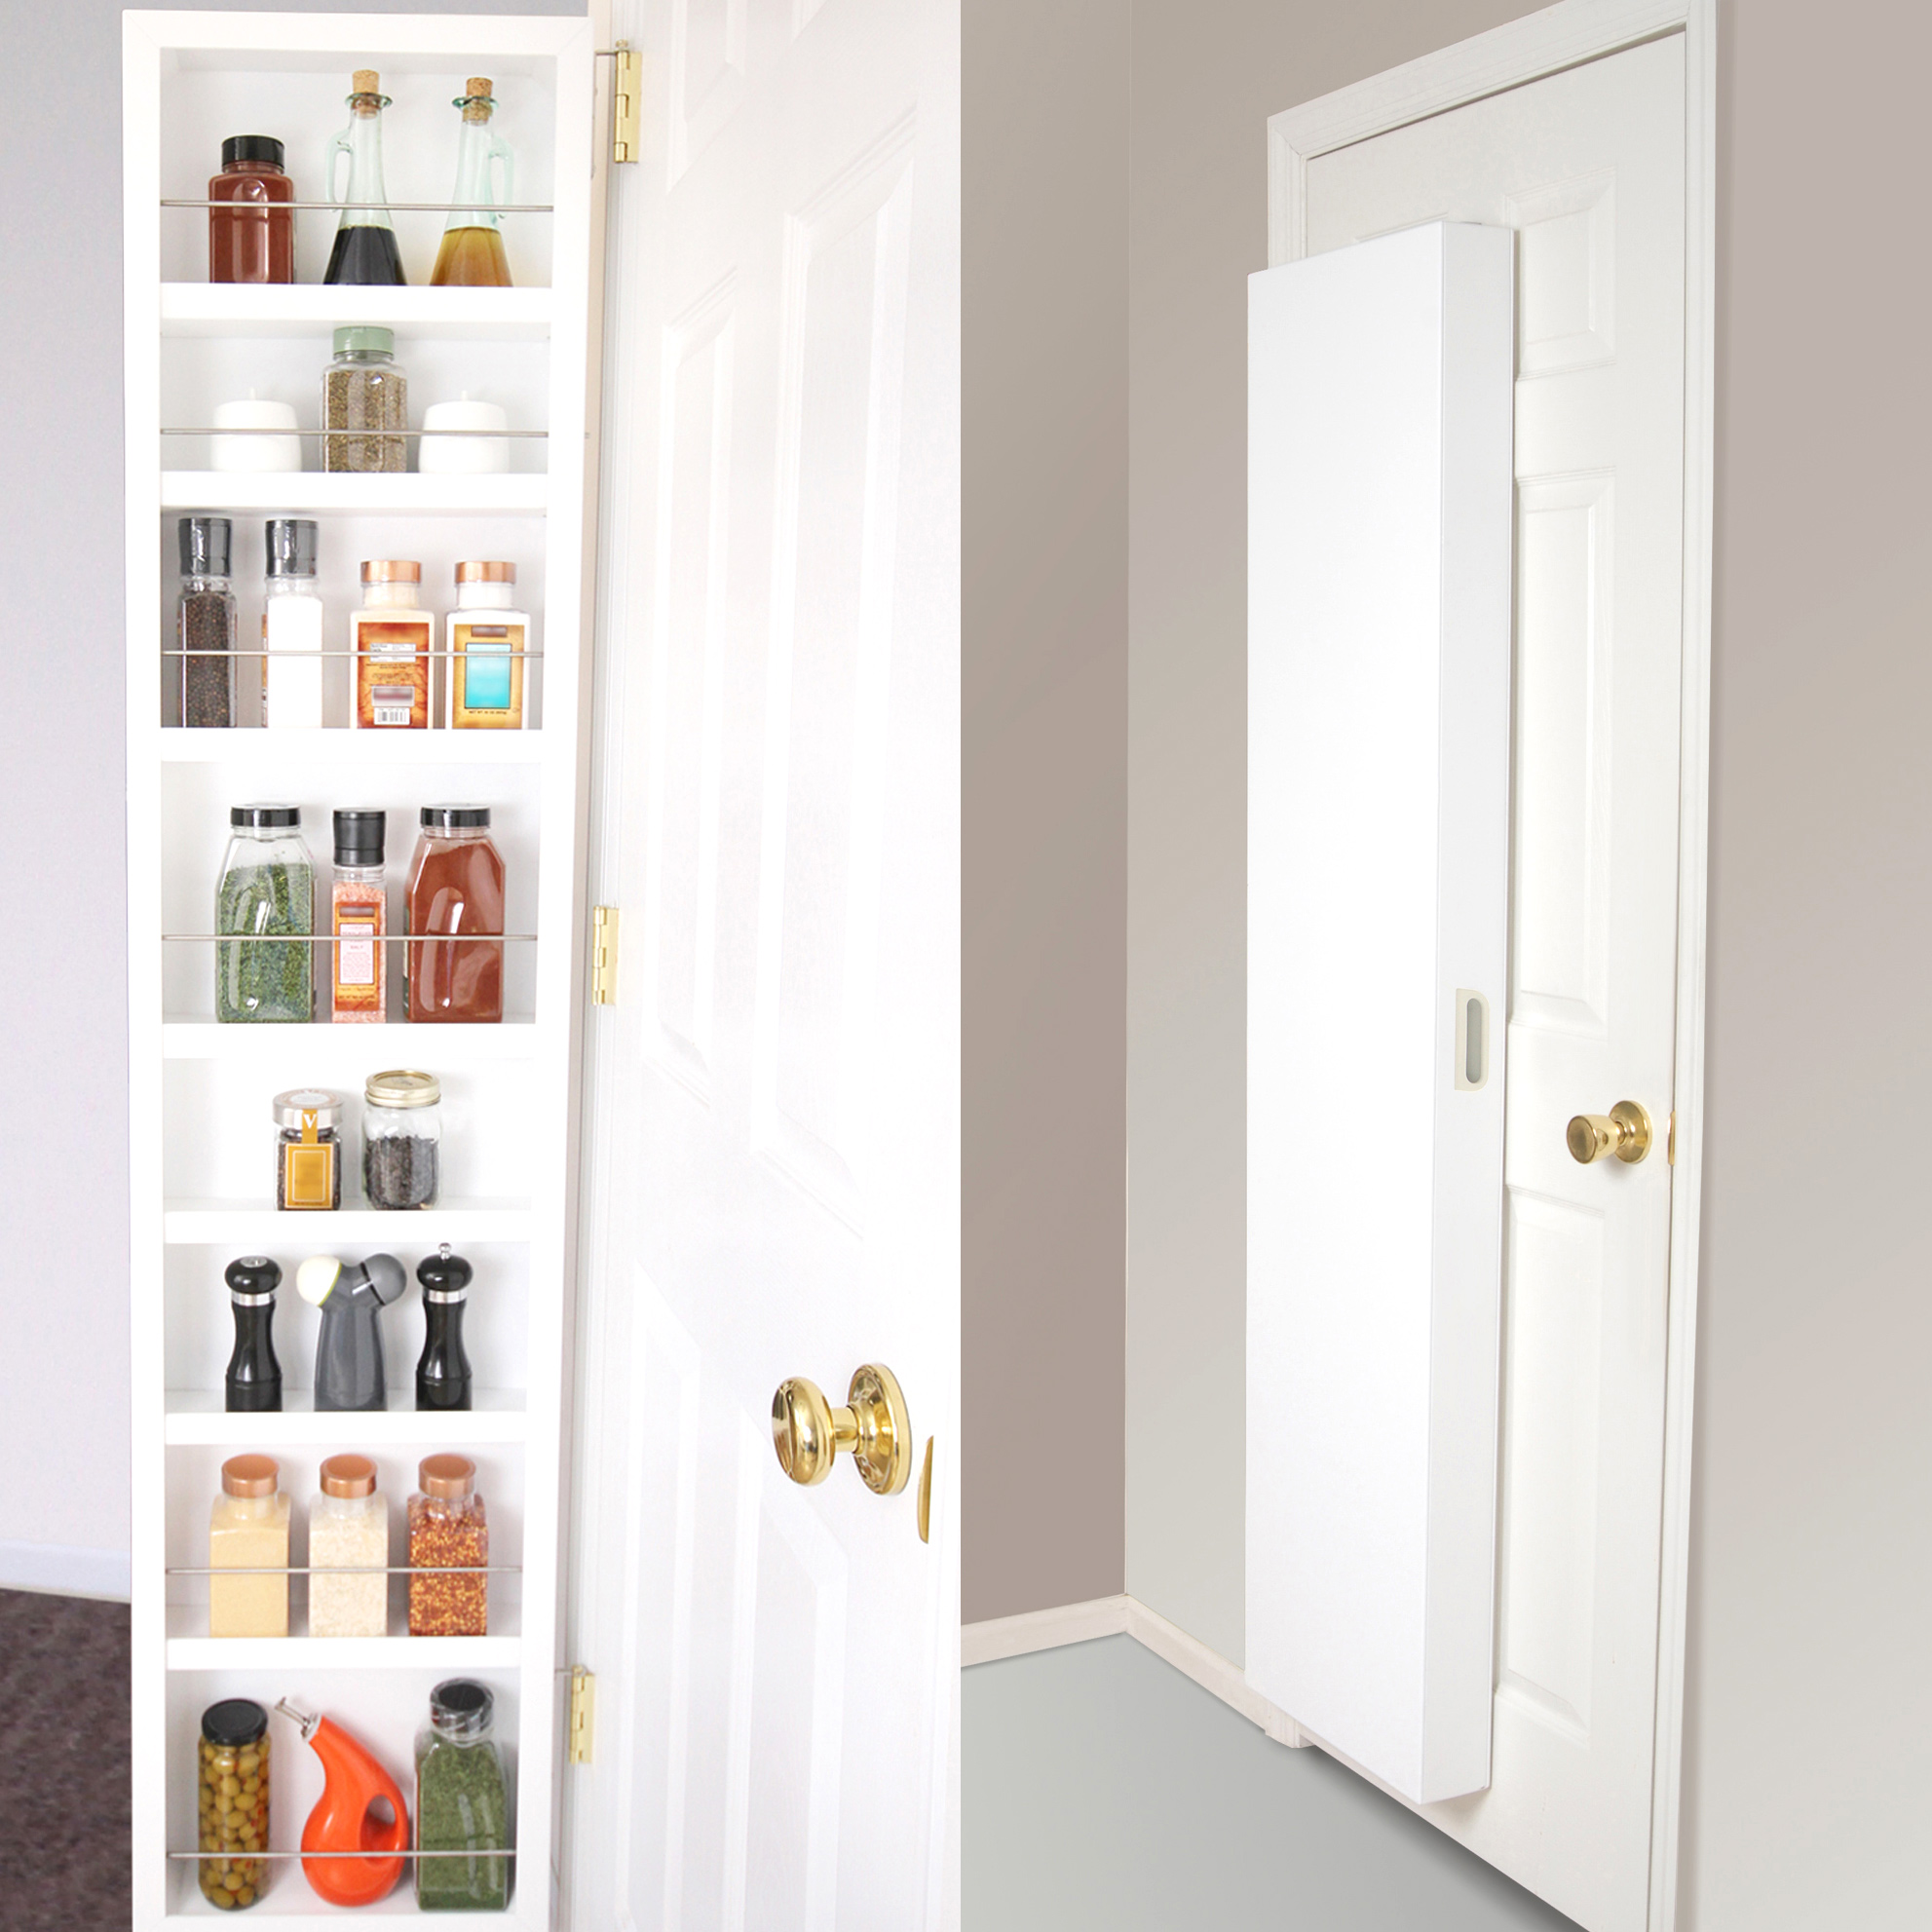 A split-screen of opened and closed Cabidors, portable storage cabinets that mount behind doors and make organizing small items easy.